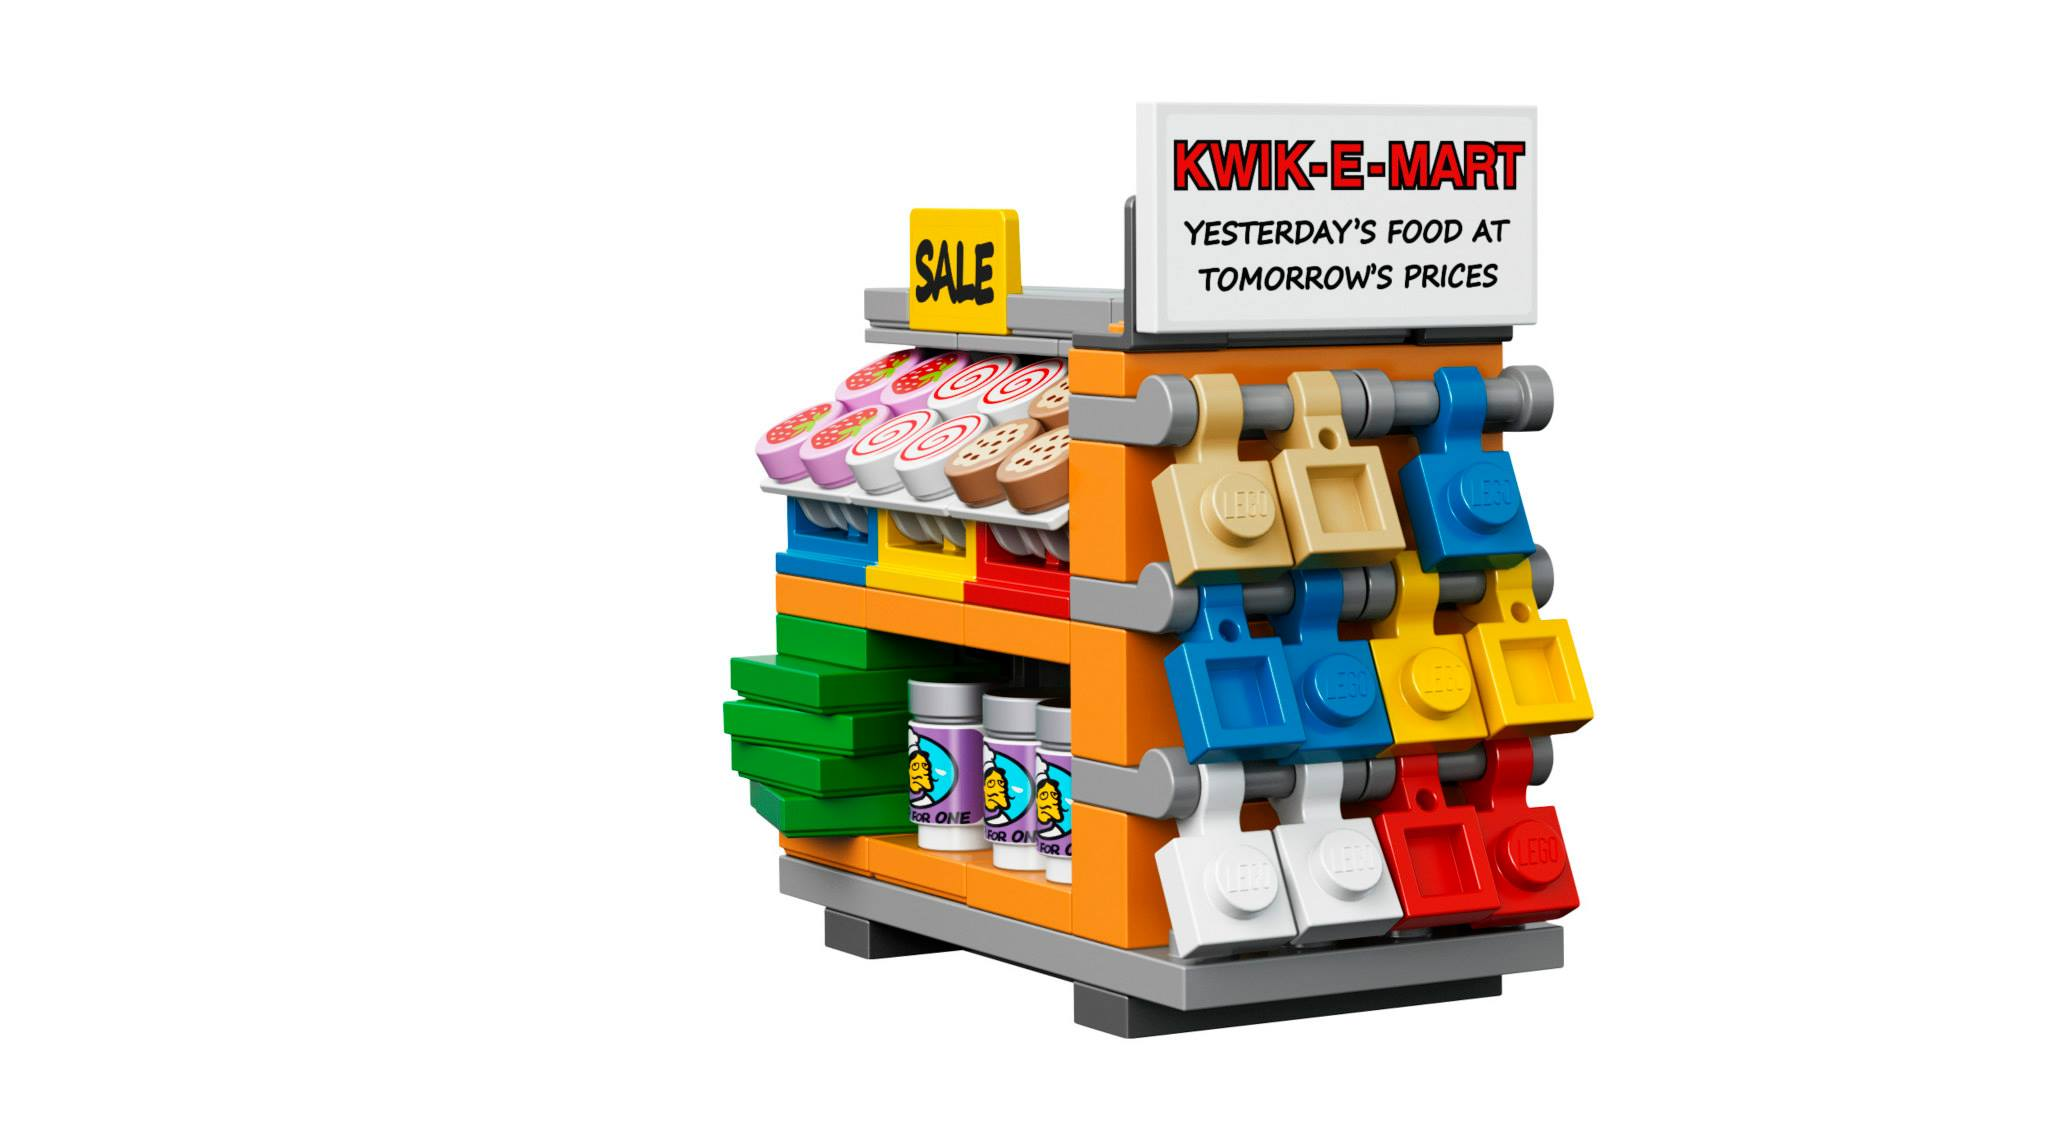 Cool Stuff: The Lego Simpsons Kwik E Mart Photos